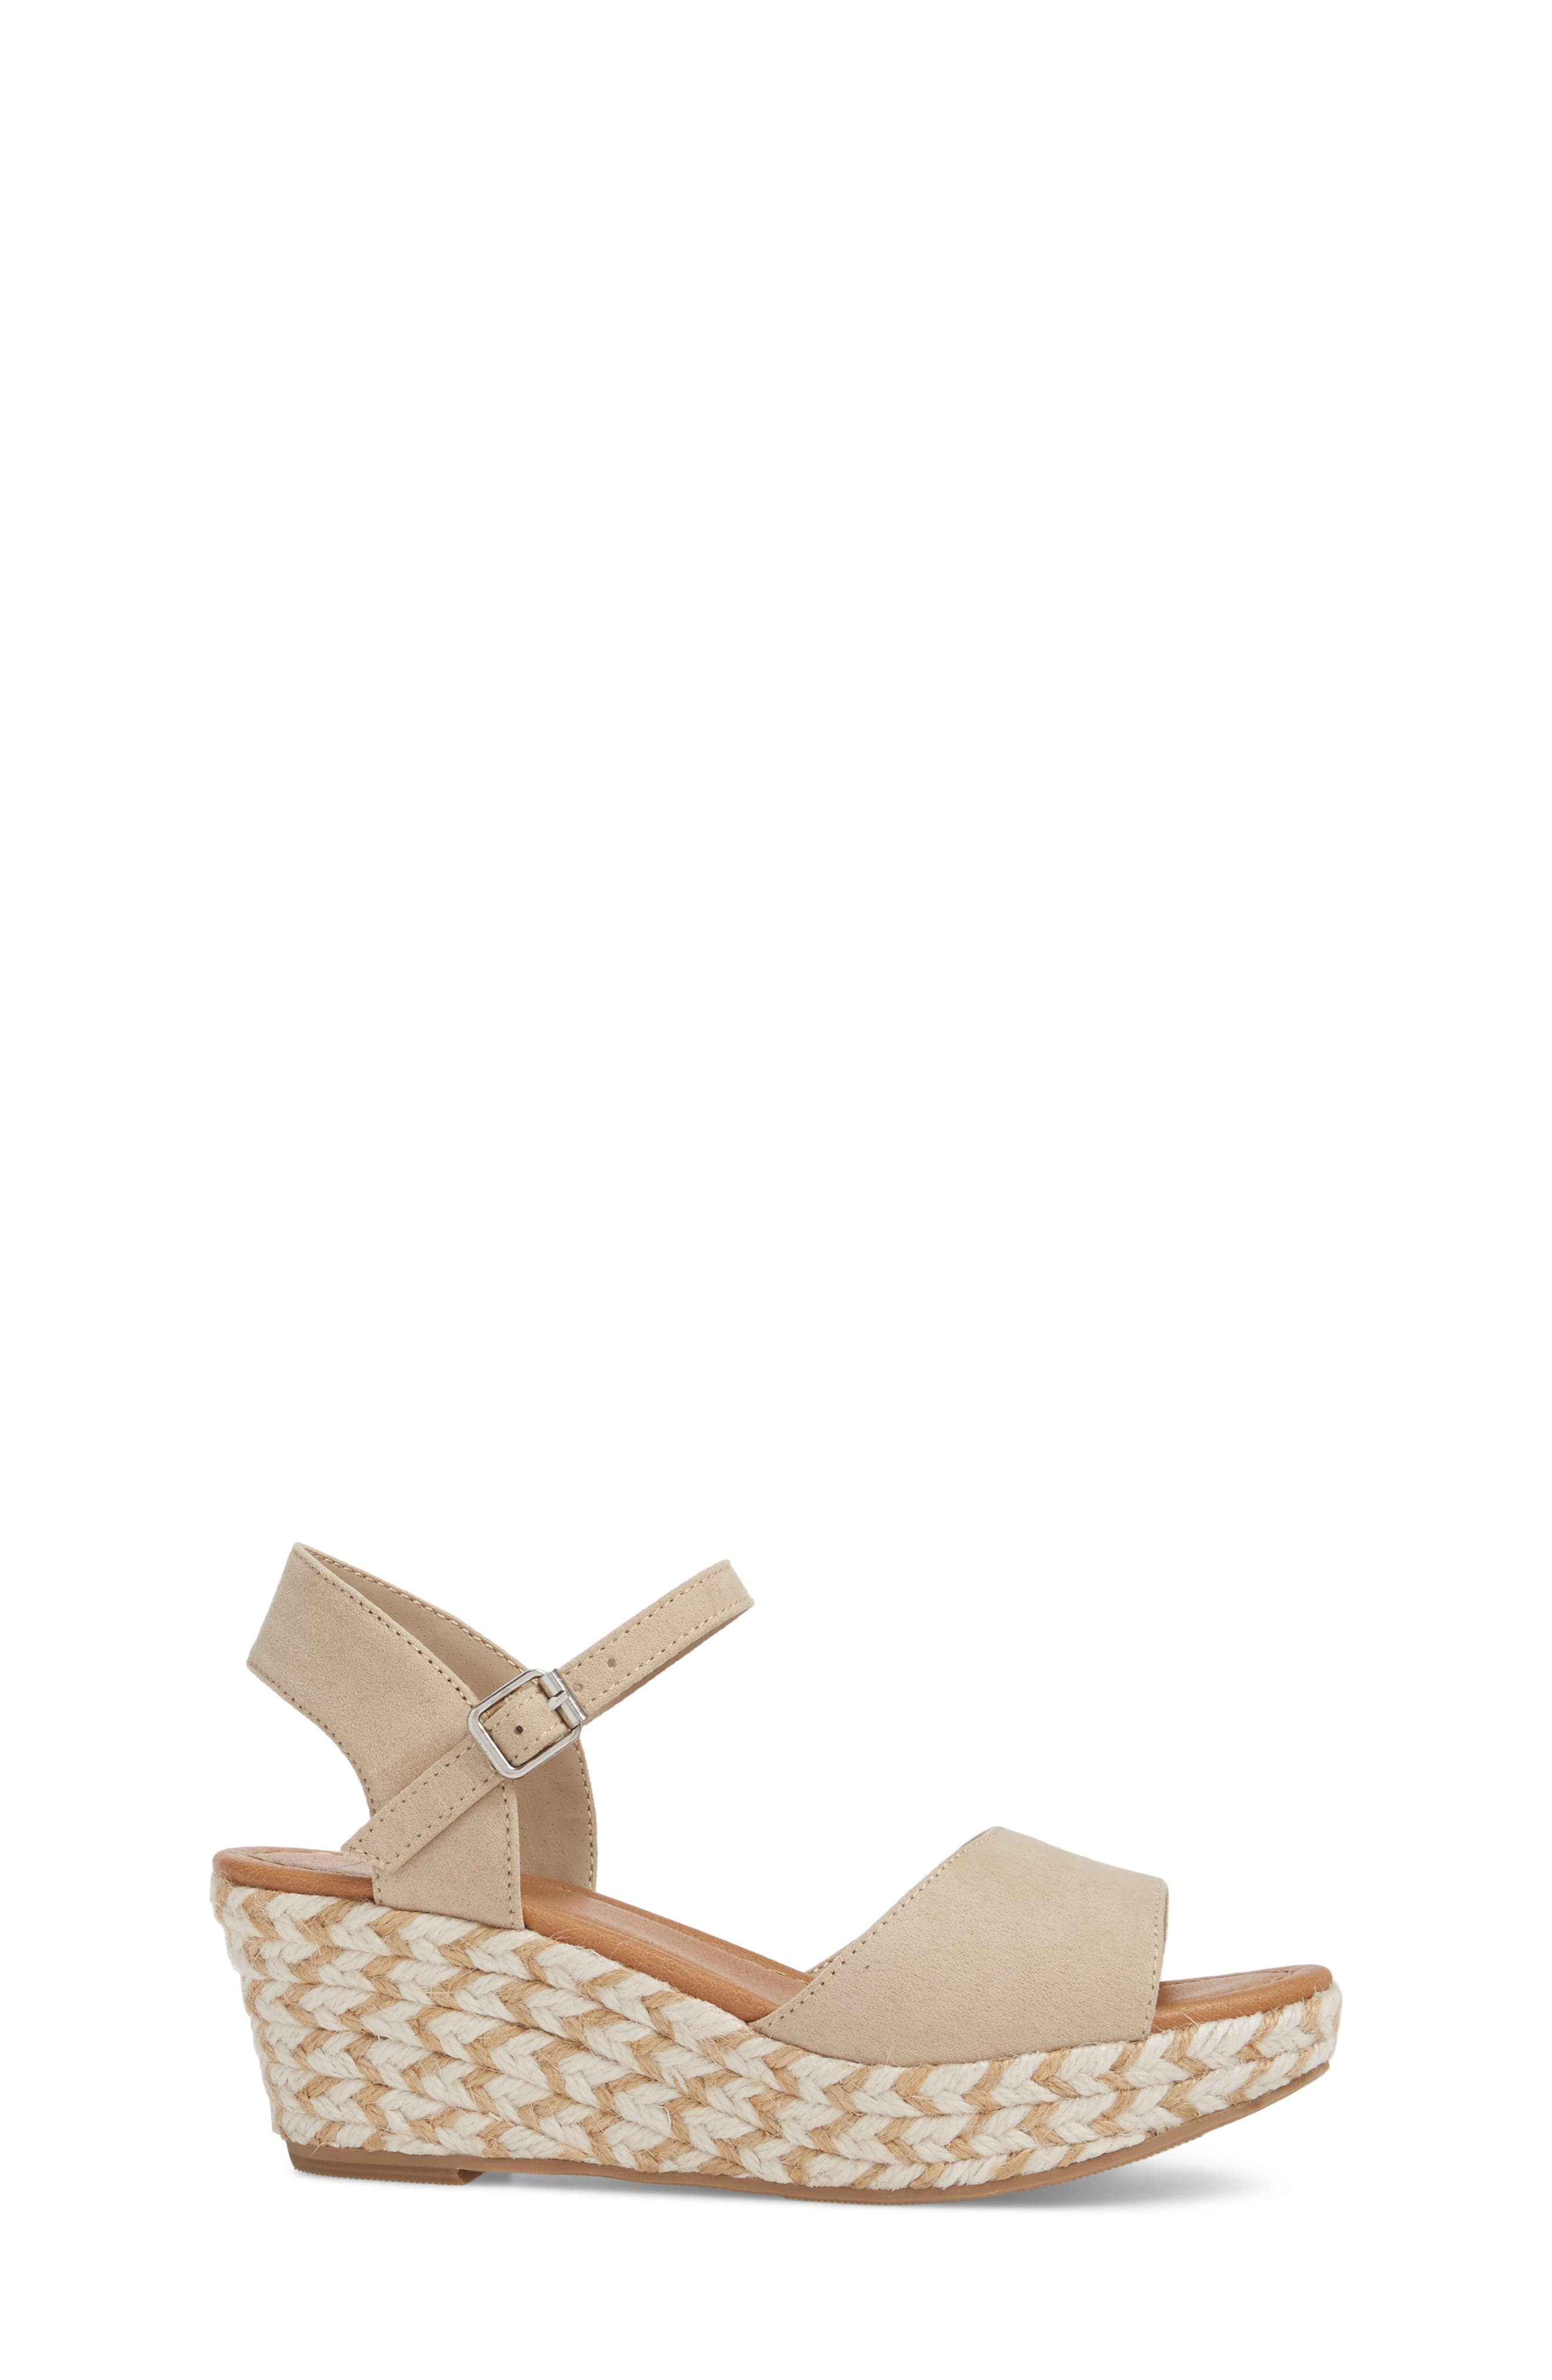 Wendy Espadrille Wedge Sandal,                             Alternate thumbnail 3, color,                             277